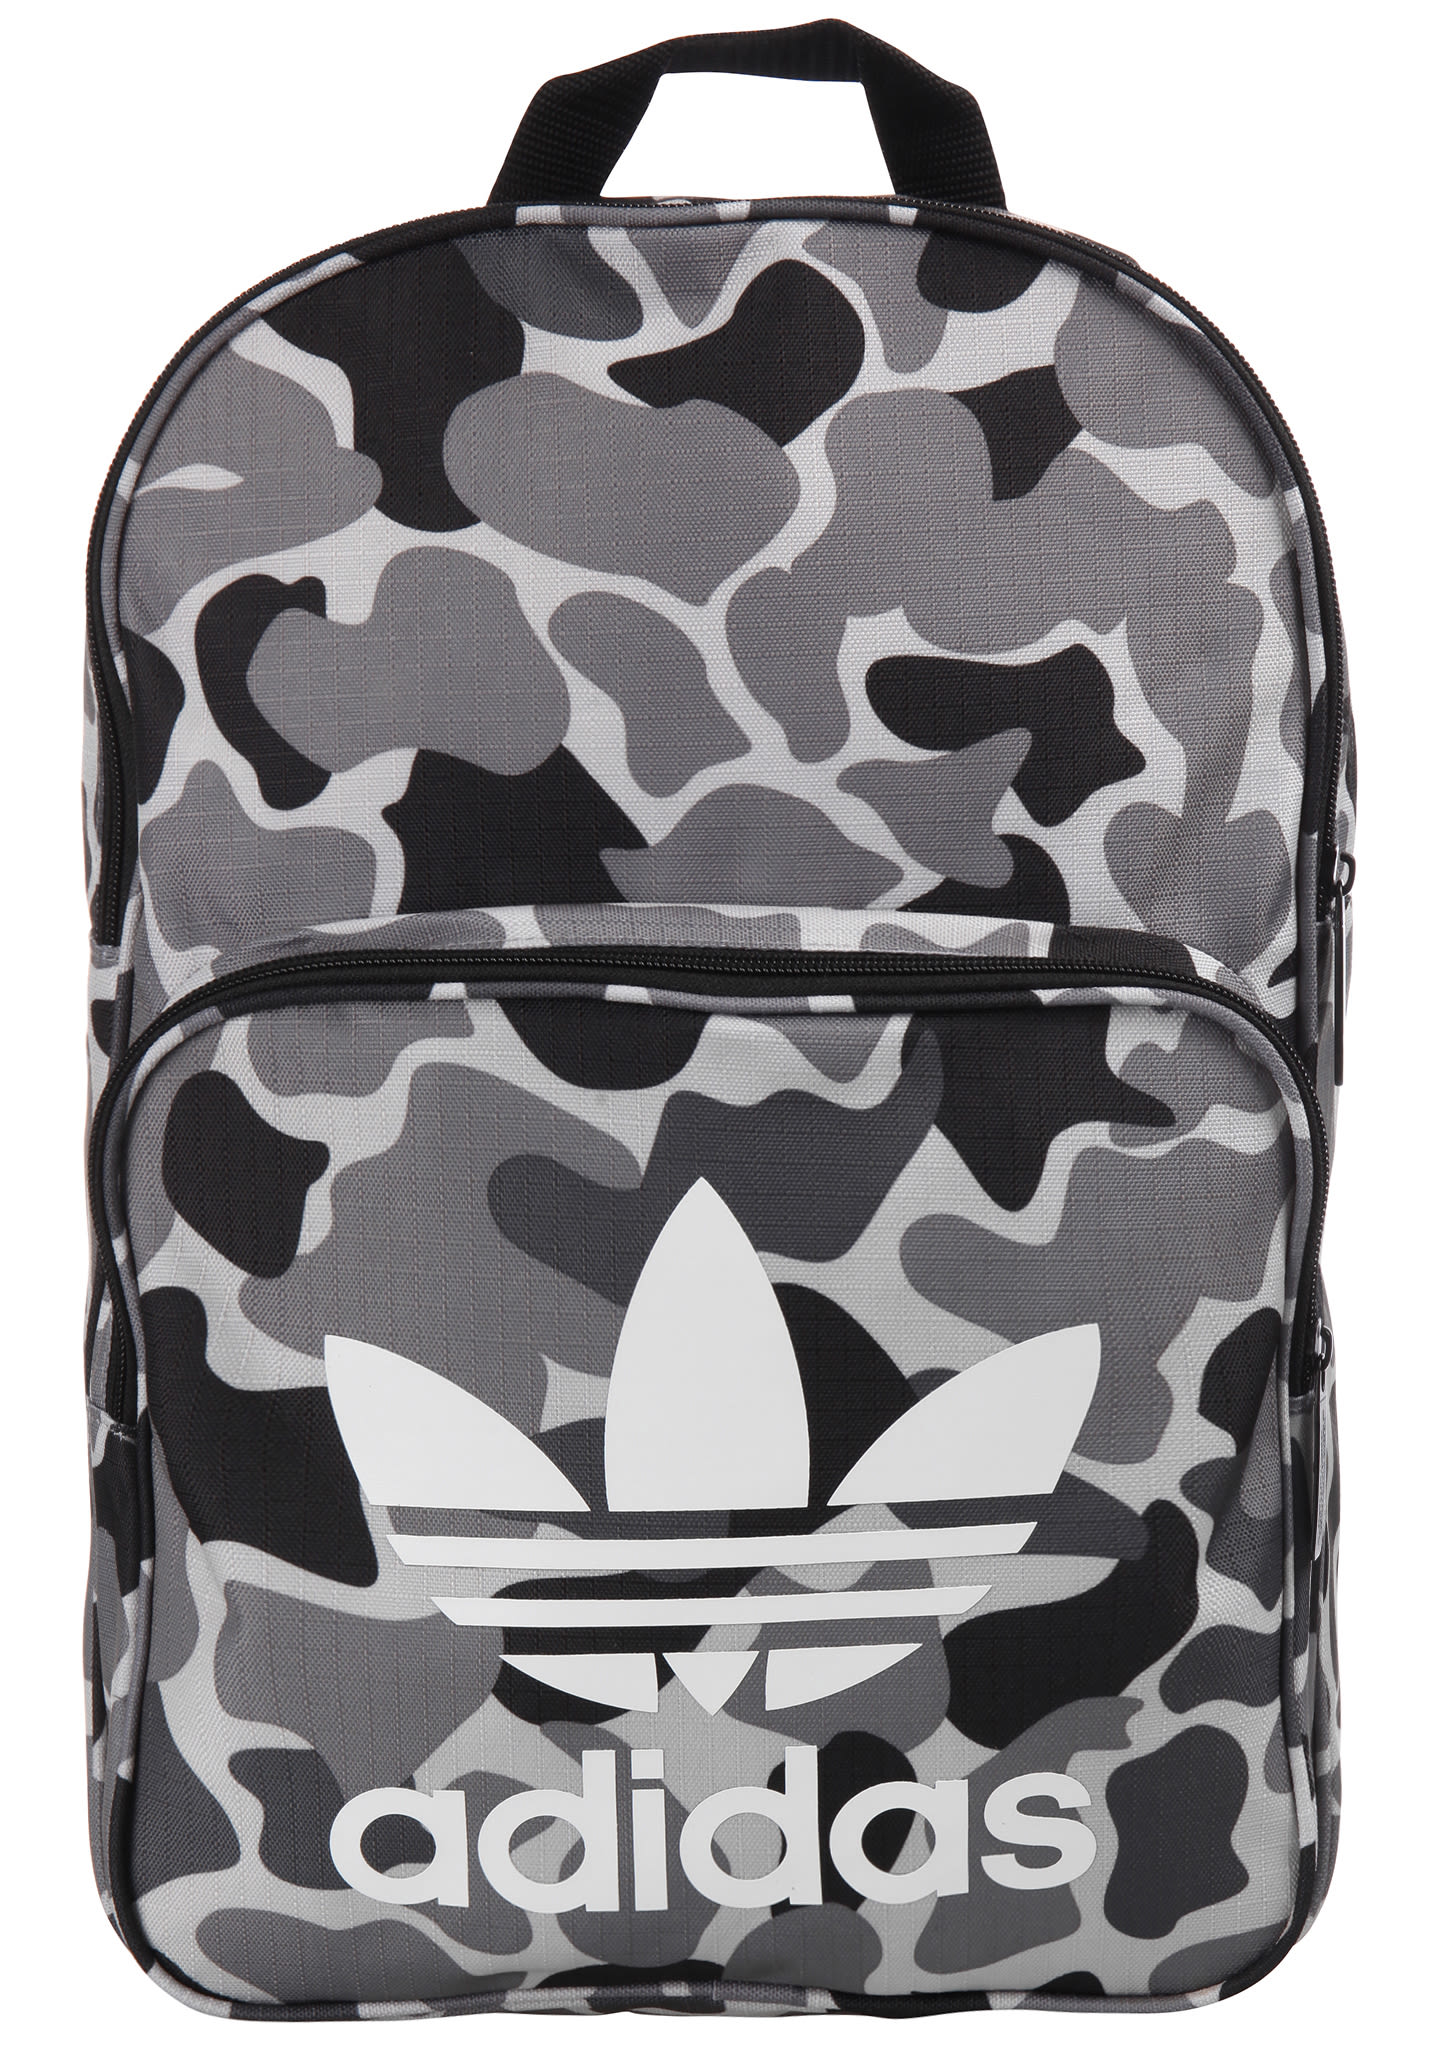 fbb34b49815f7 adidas Originals Classic Camo - Rucksack - Camouflage - Planet Sports